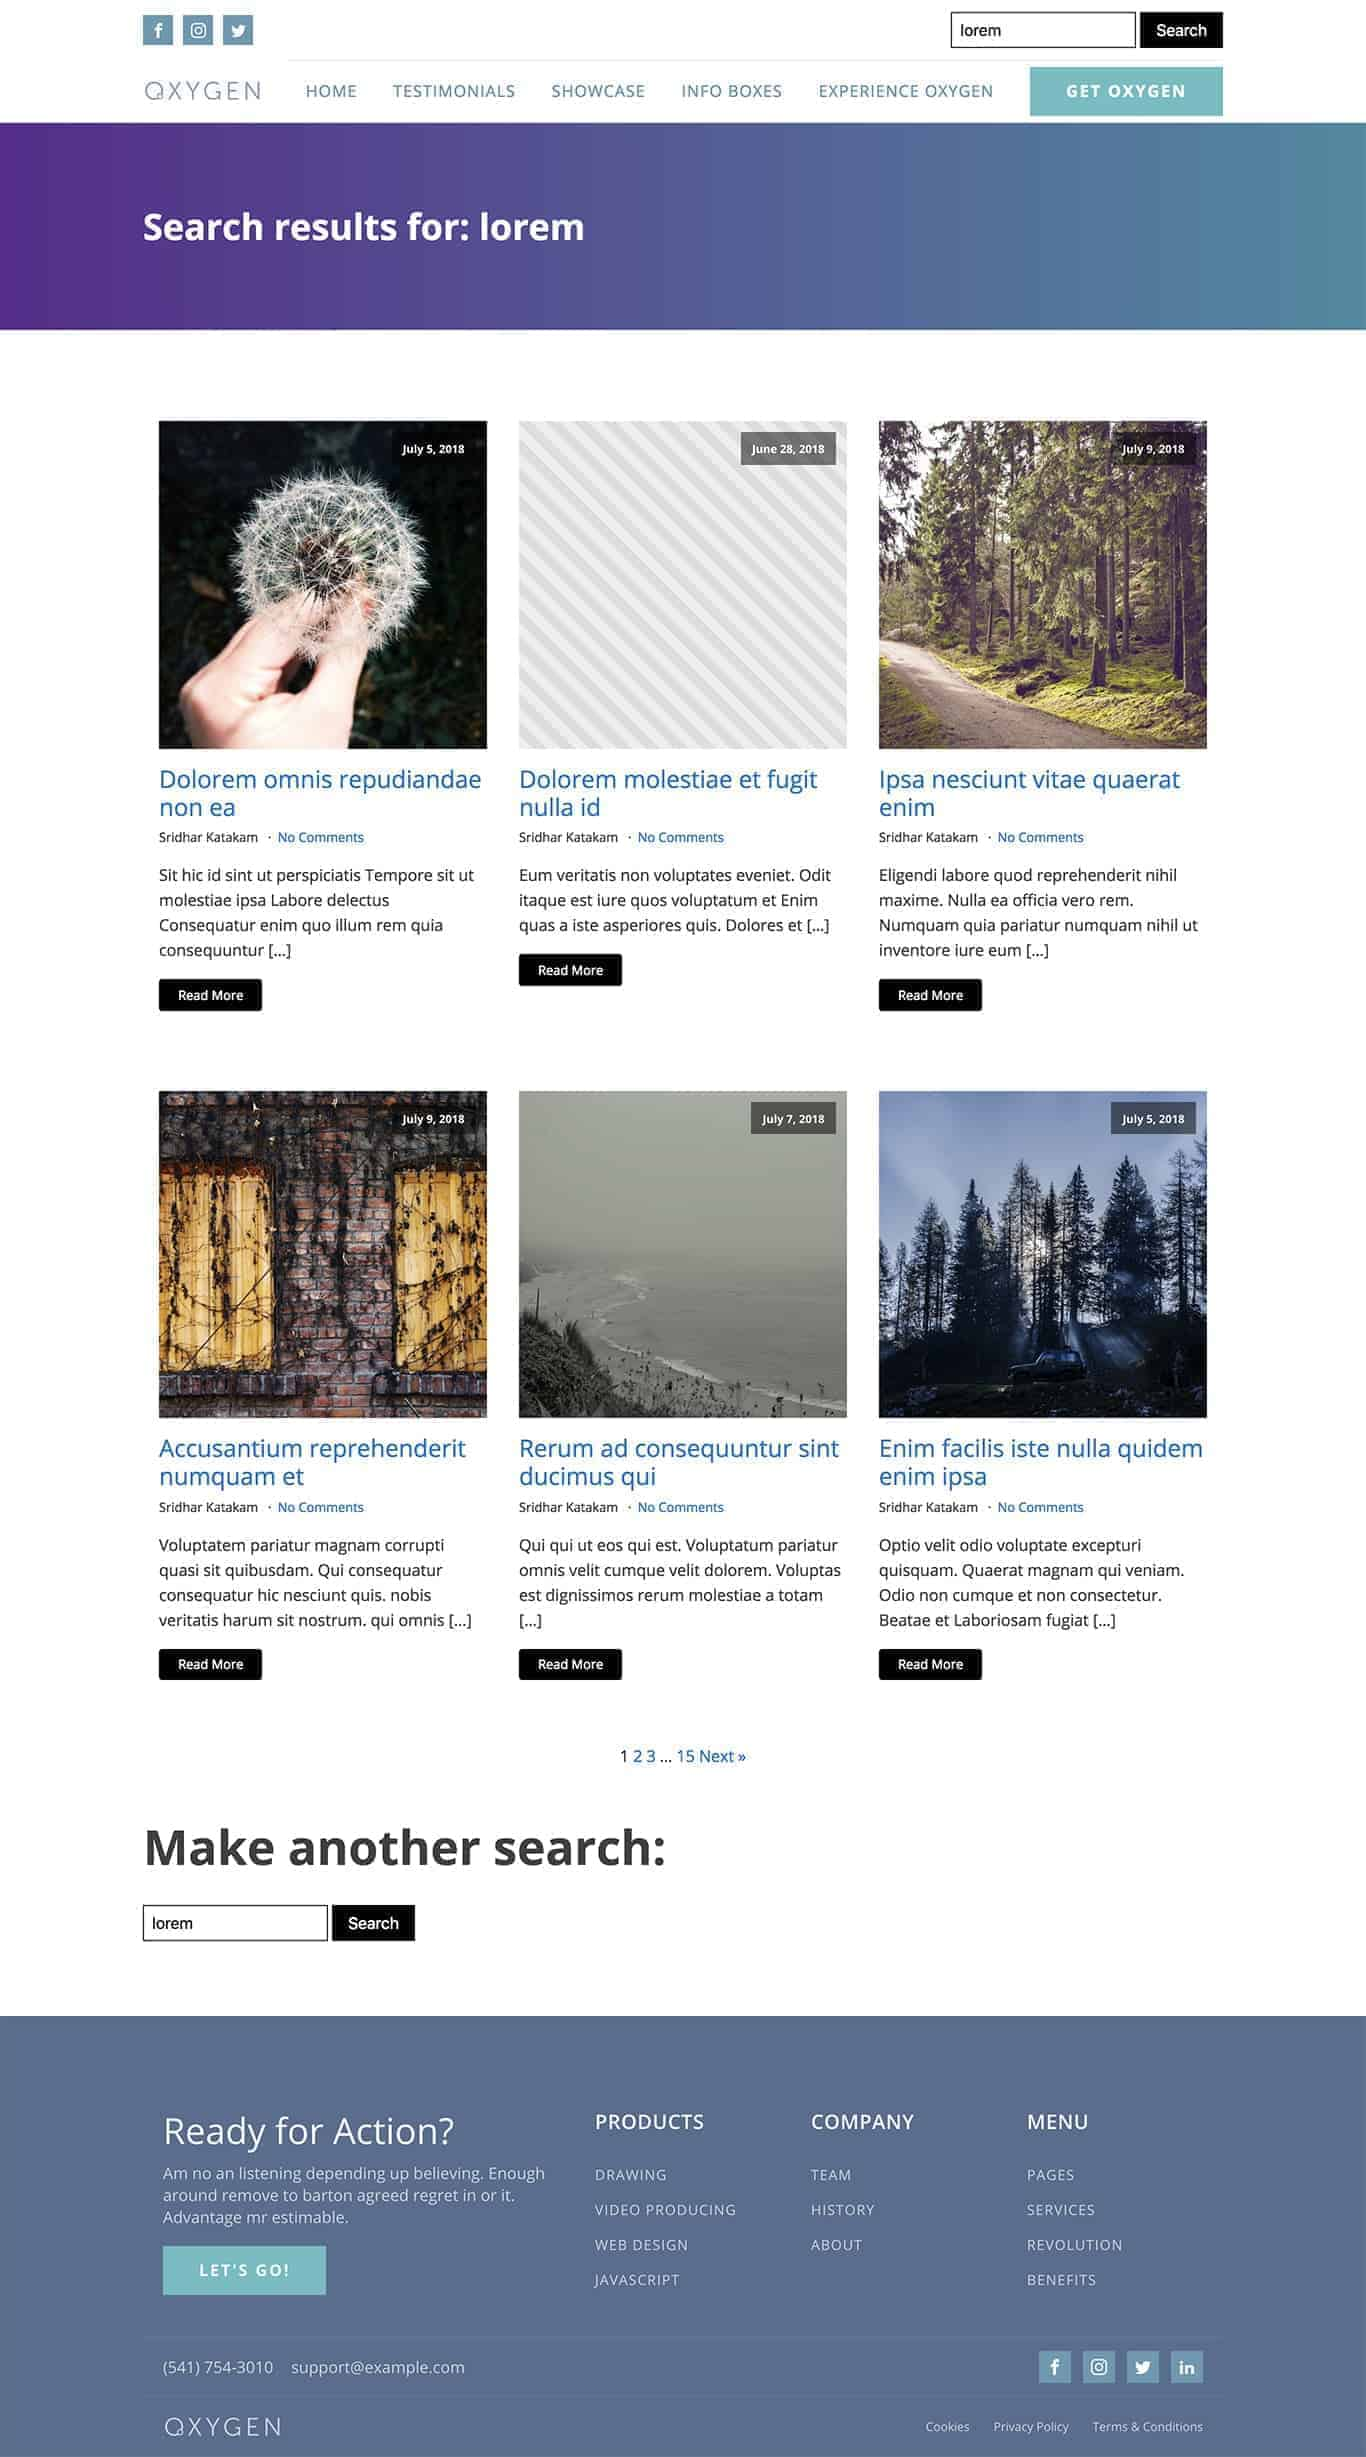 How To Create A Search Results Page In Oxygen Wpdevdesign